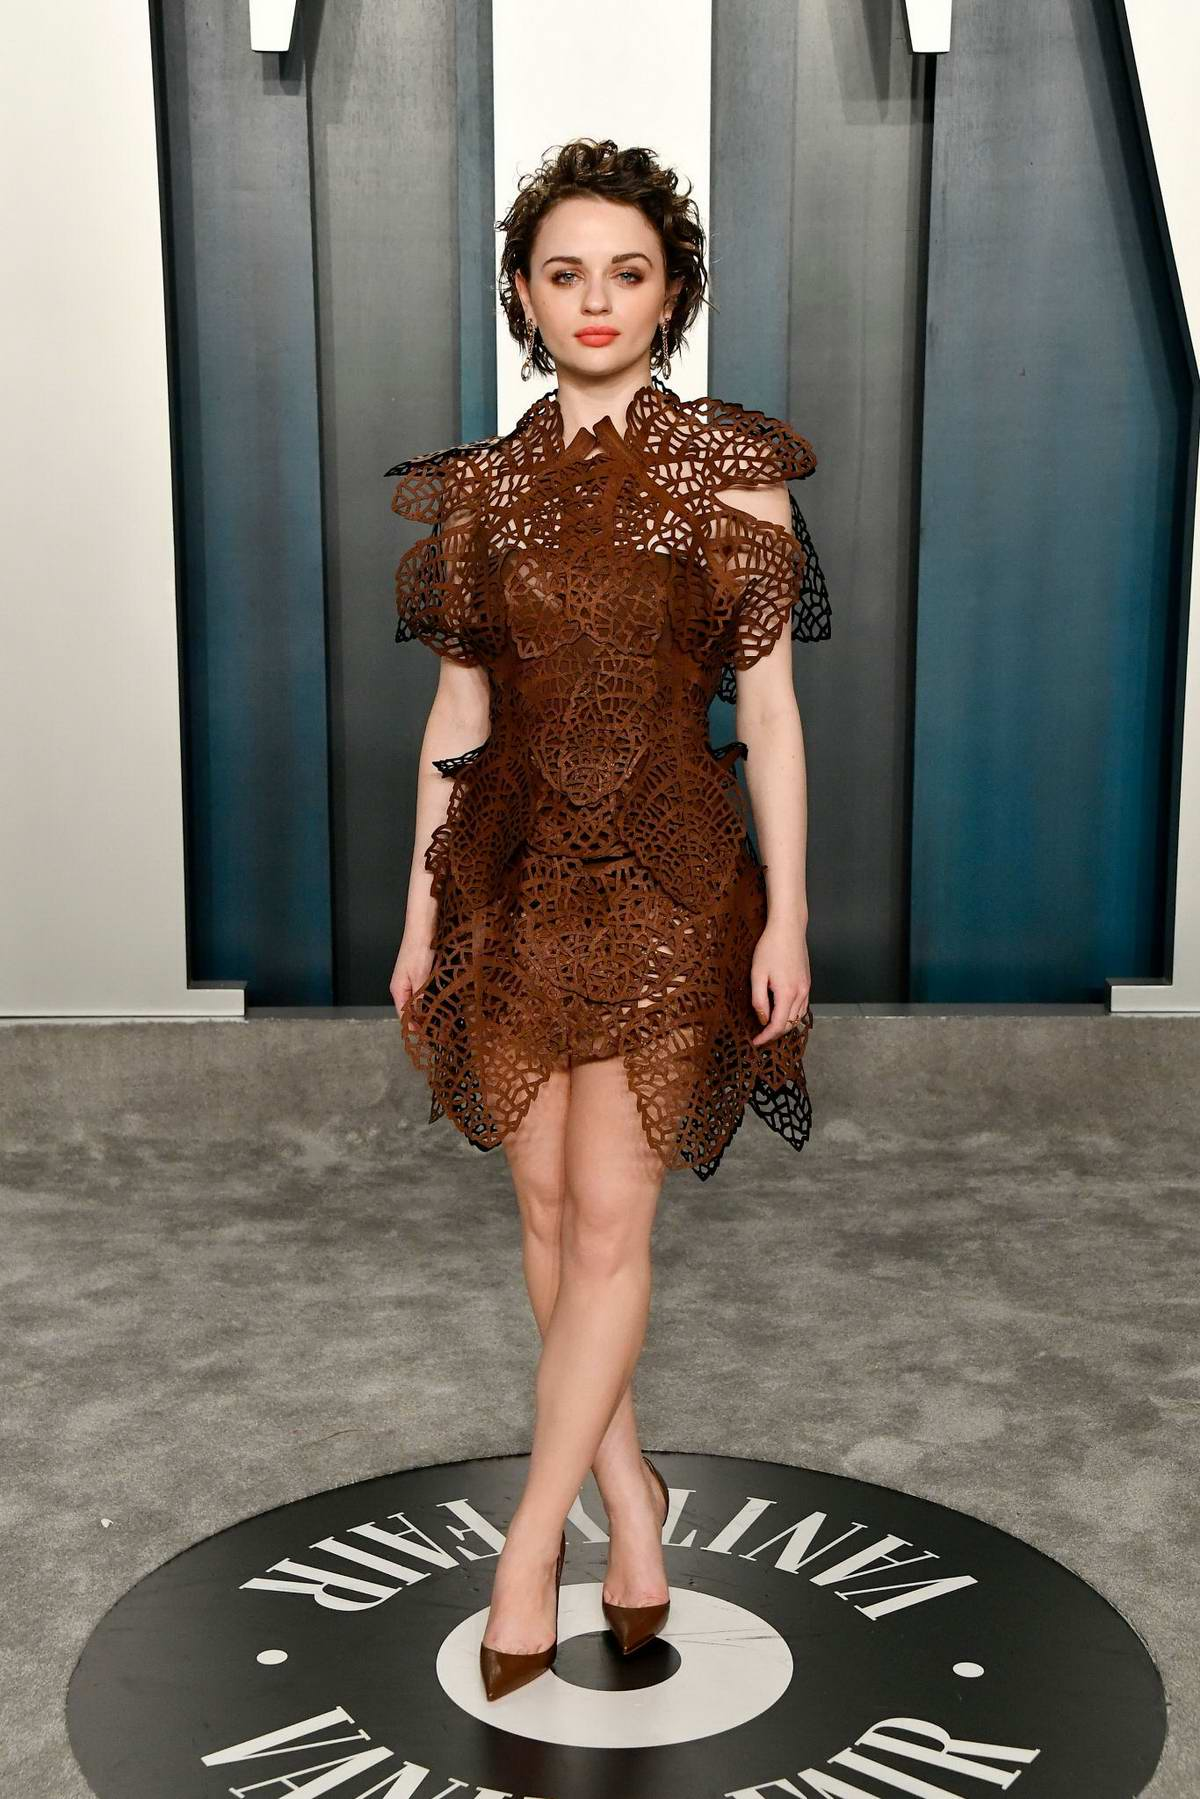 Joey King attends the 2020 Vanity Fair Oscar Party at Wallis Annenberg Center for the Performing Arts in Los Angeles